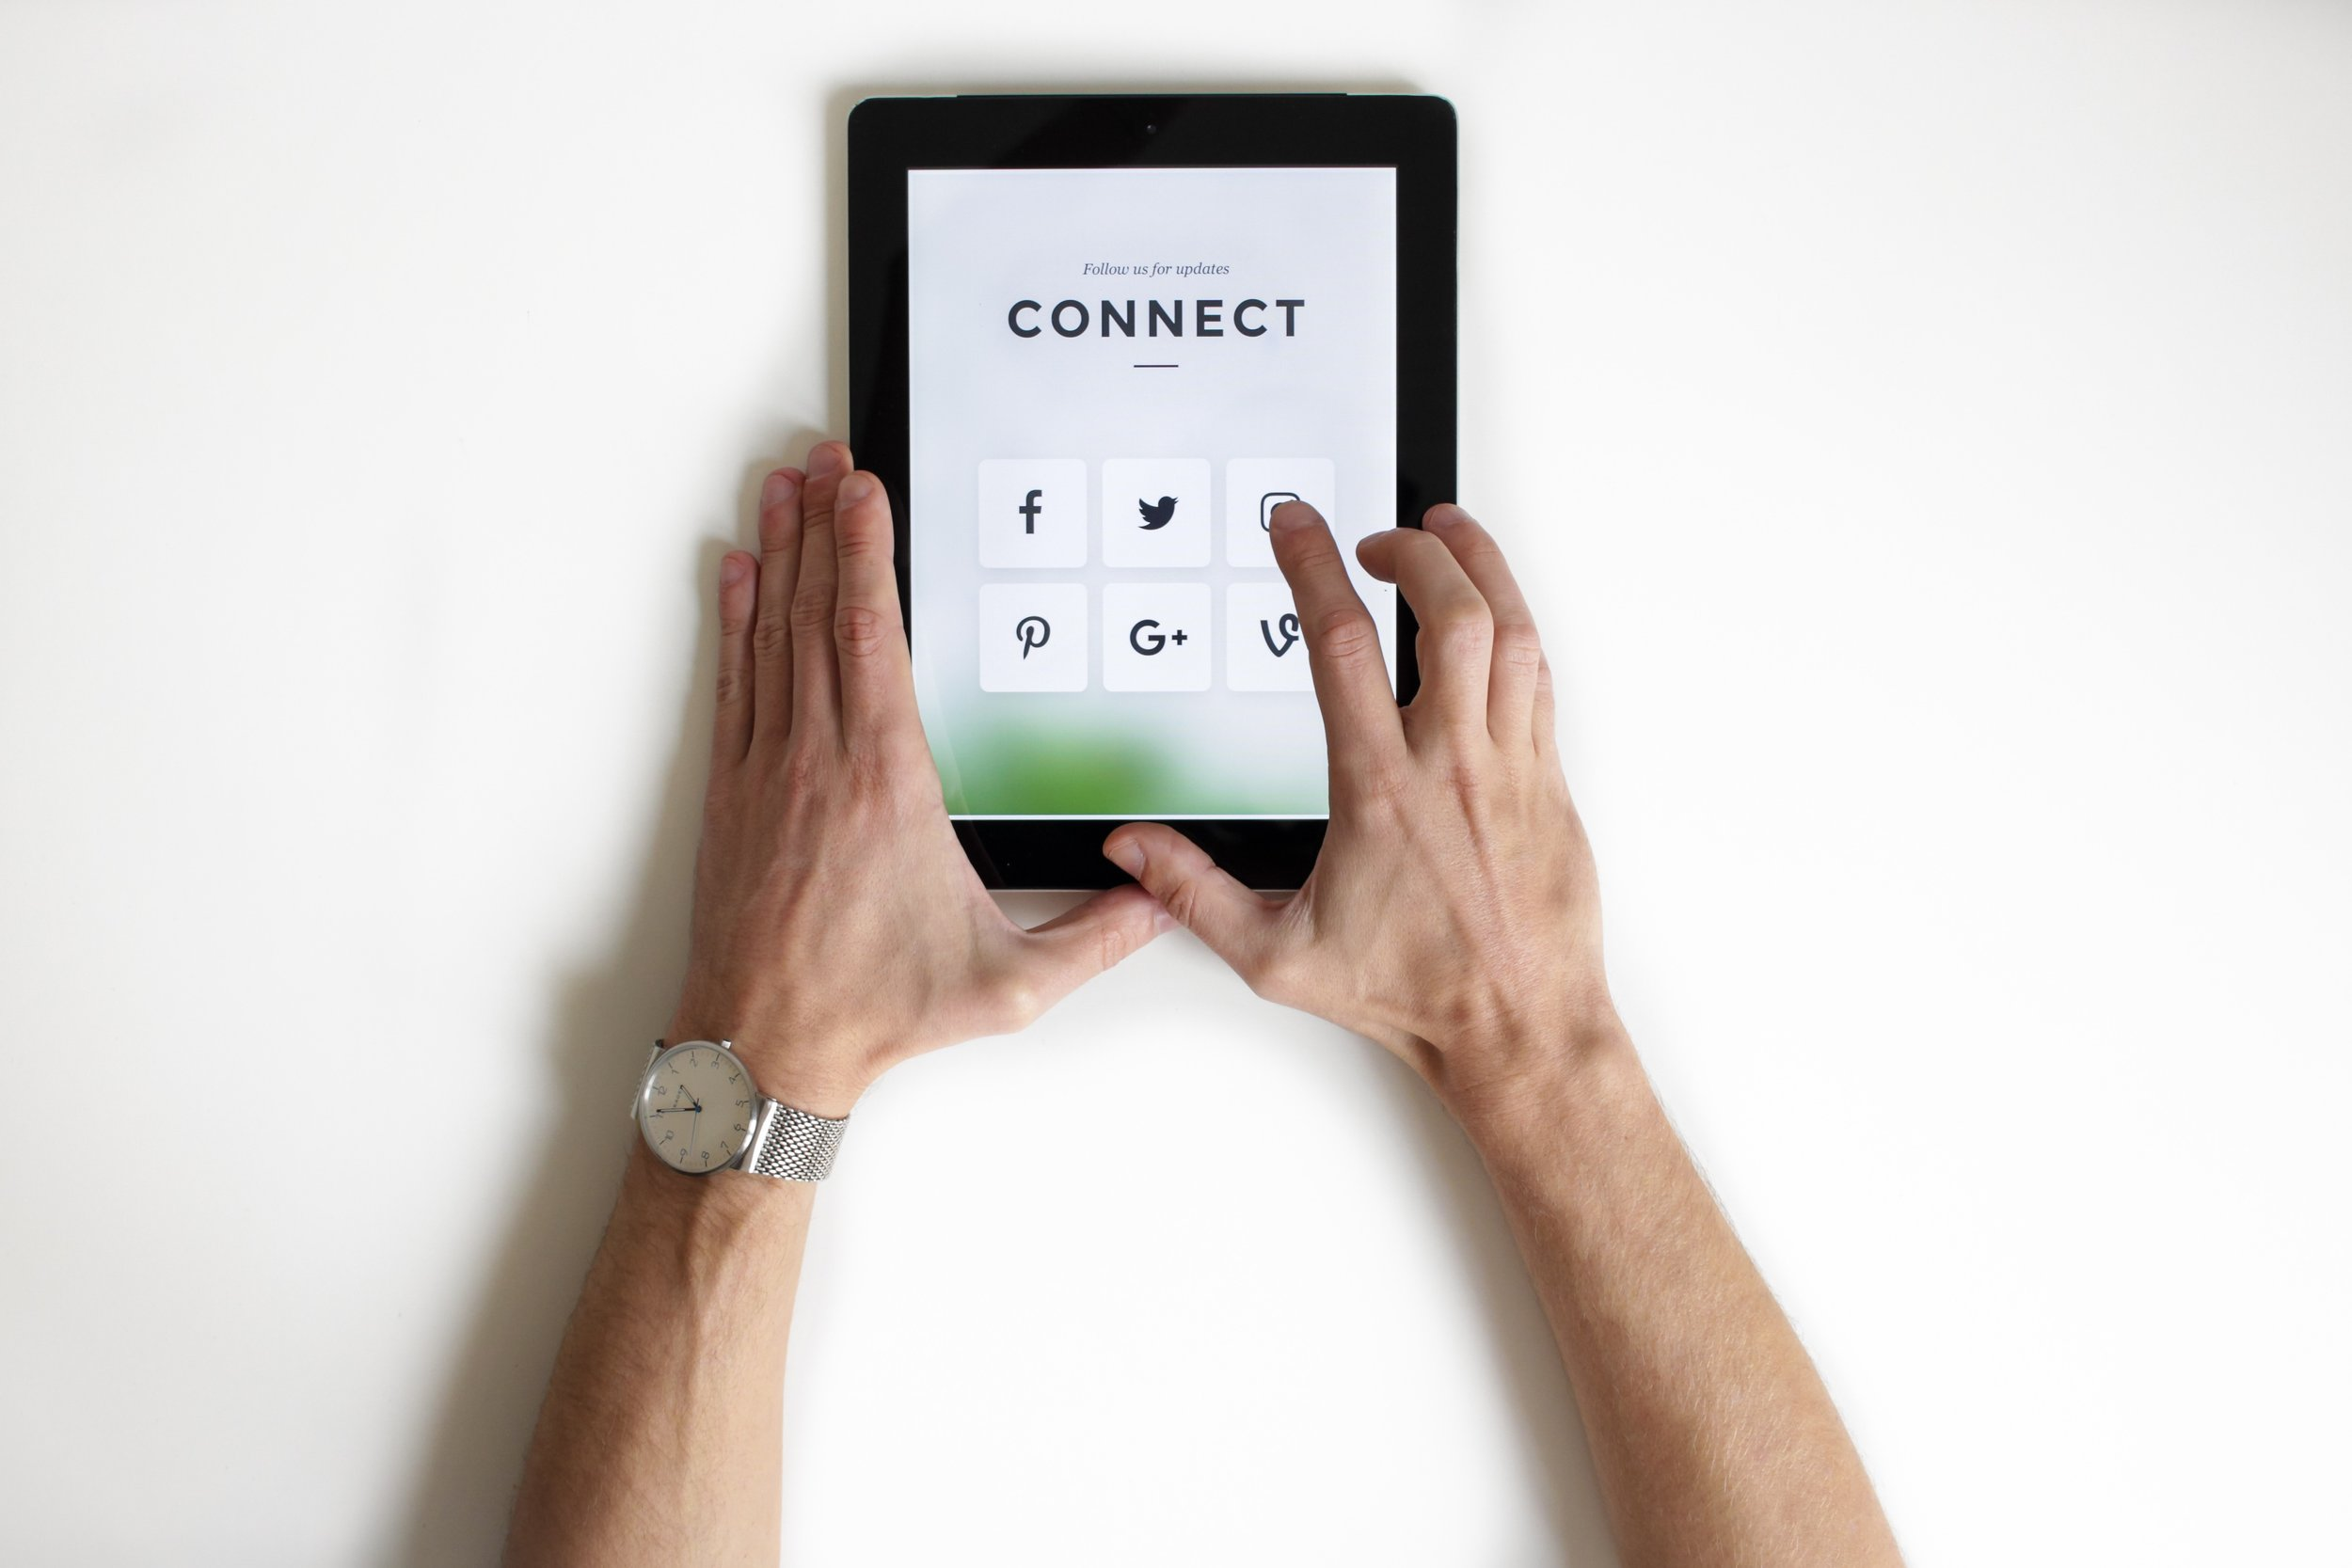 how to connect on social media - nordwood-themes-359015-unsplash.jpg